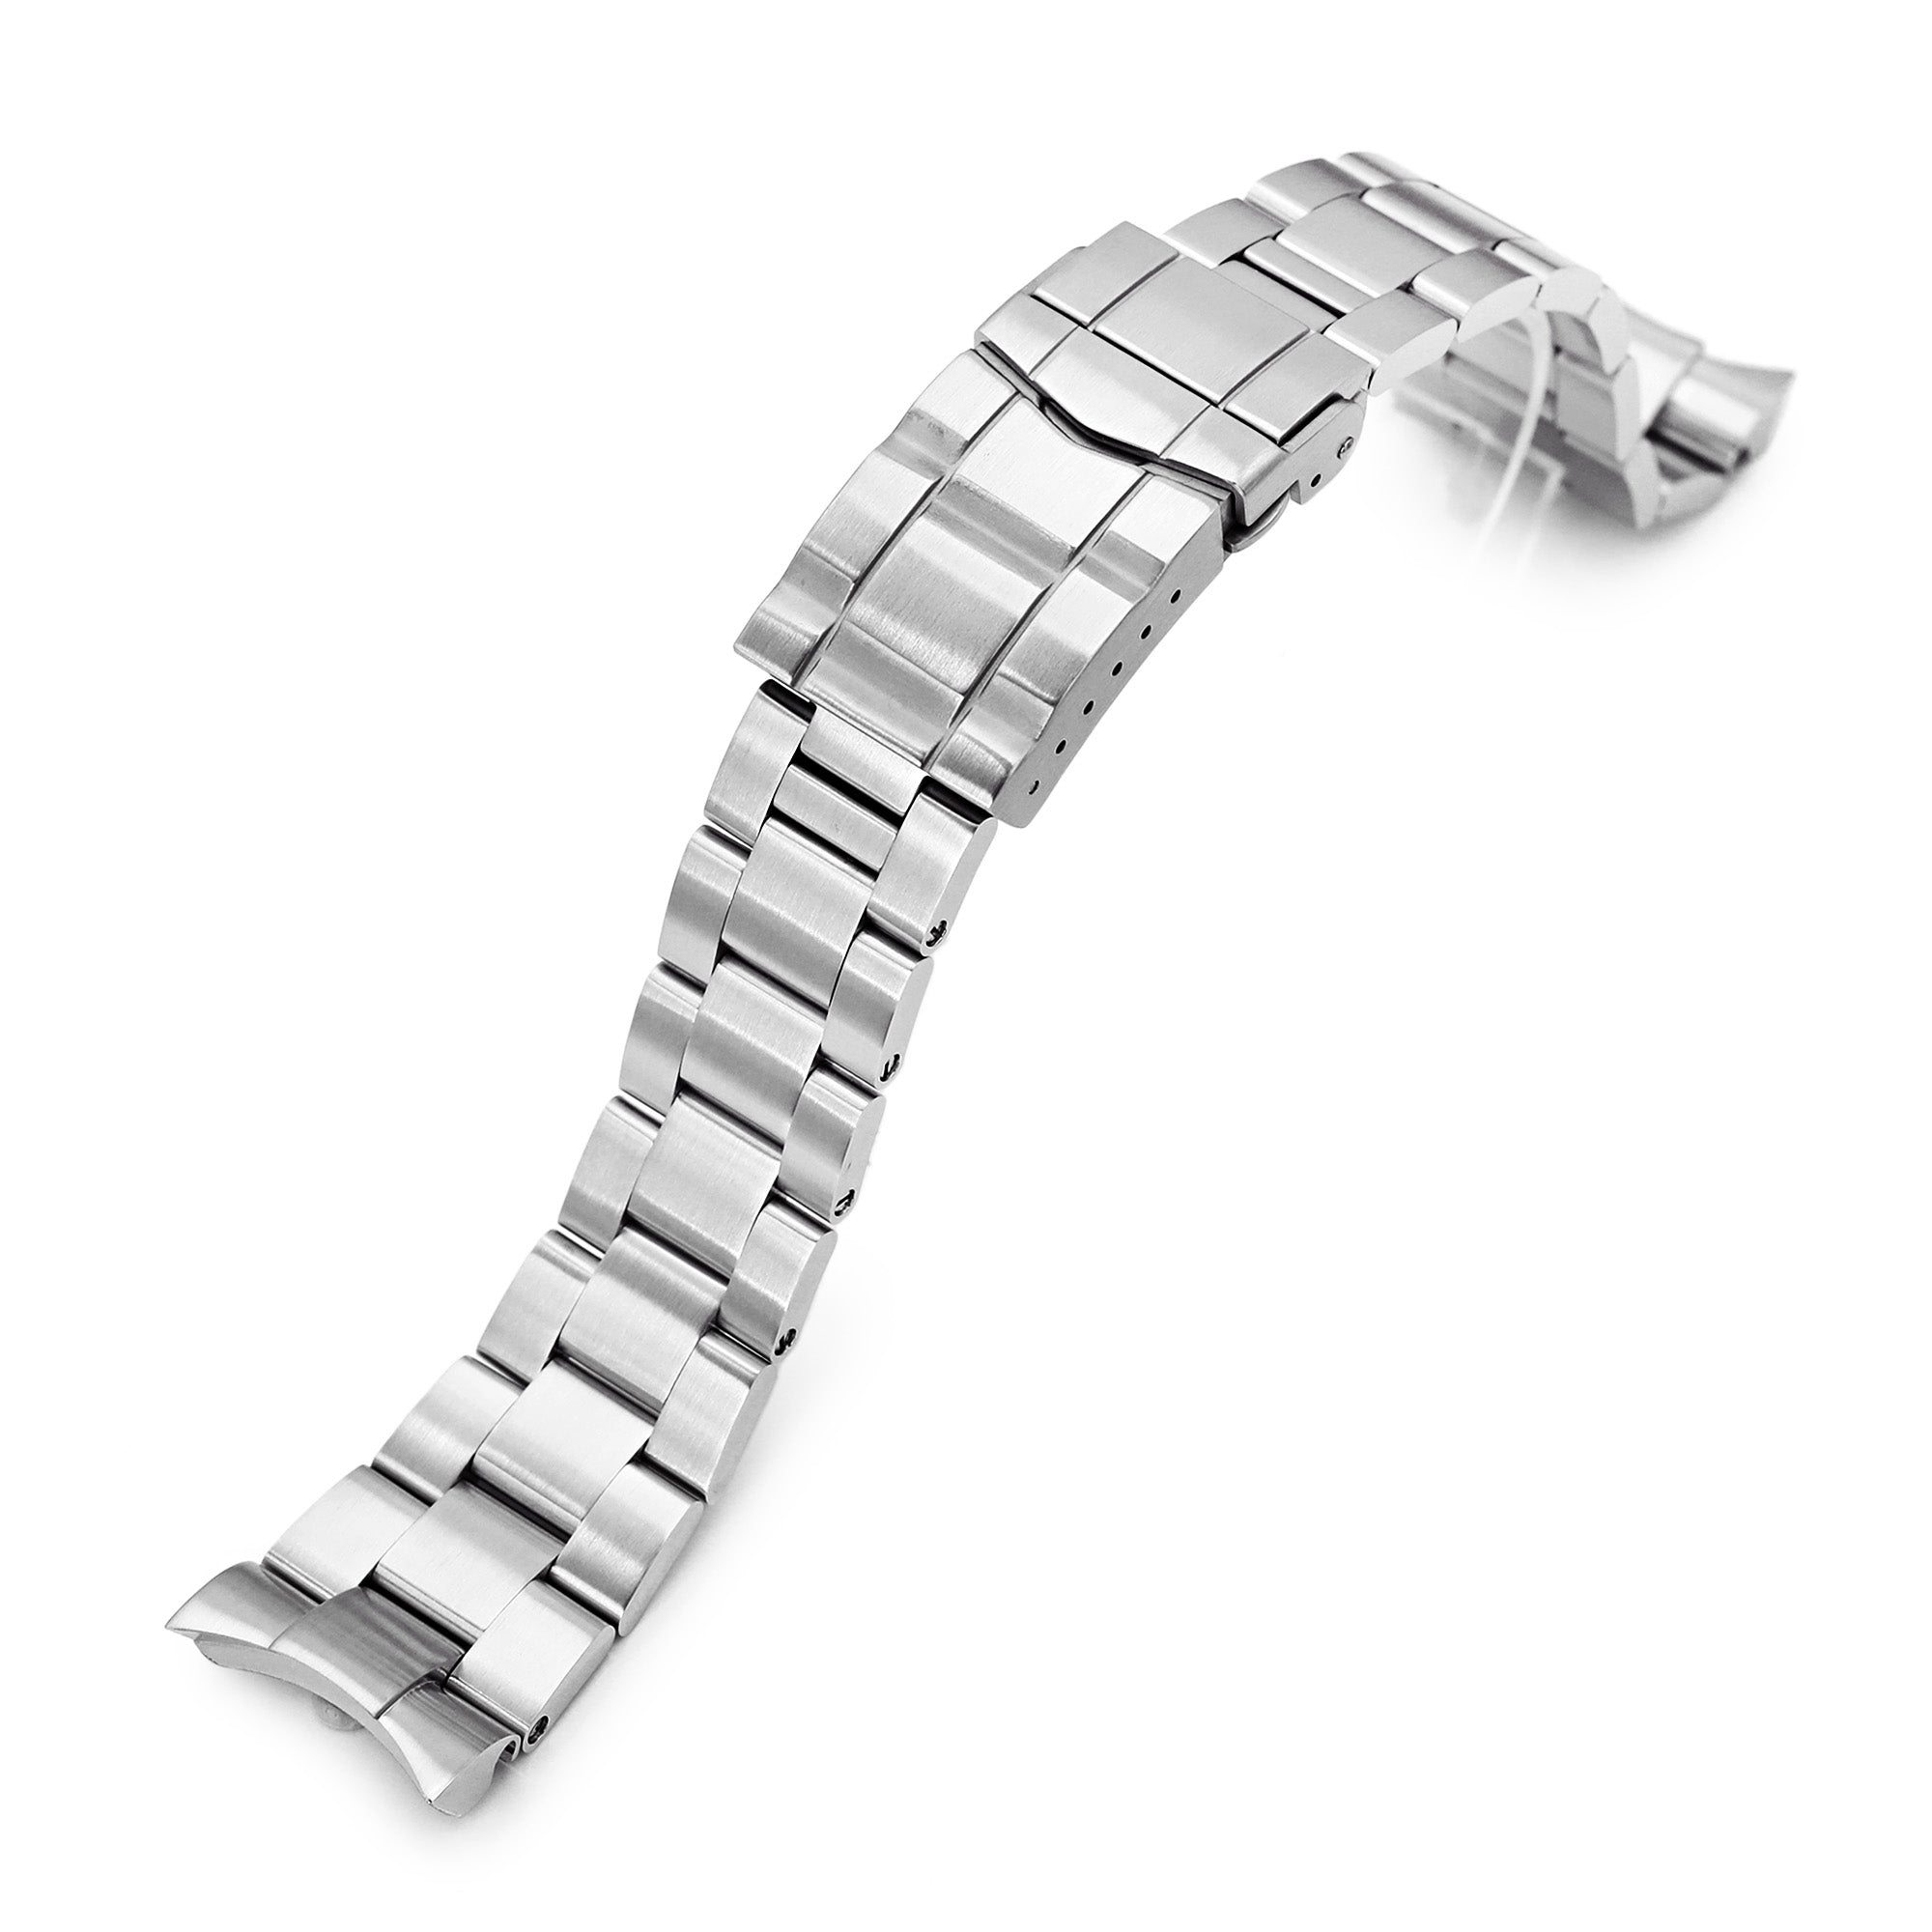 22mm Super-O Boyer 316L Stainless Steel Watch Band for Orient Mako II & Ray II, SUB Clasp Strapcode Watch Bands